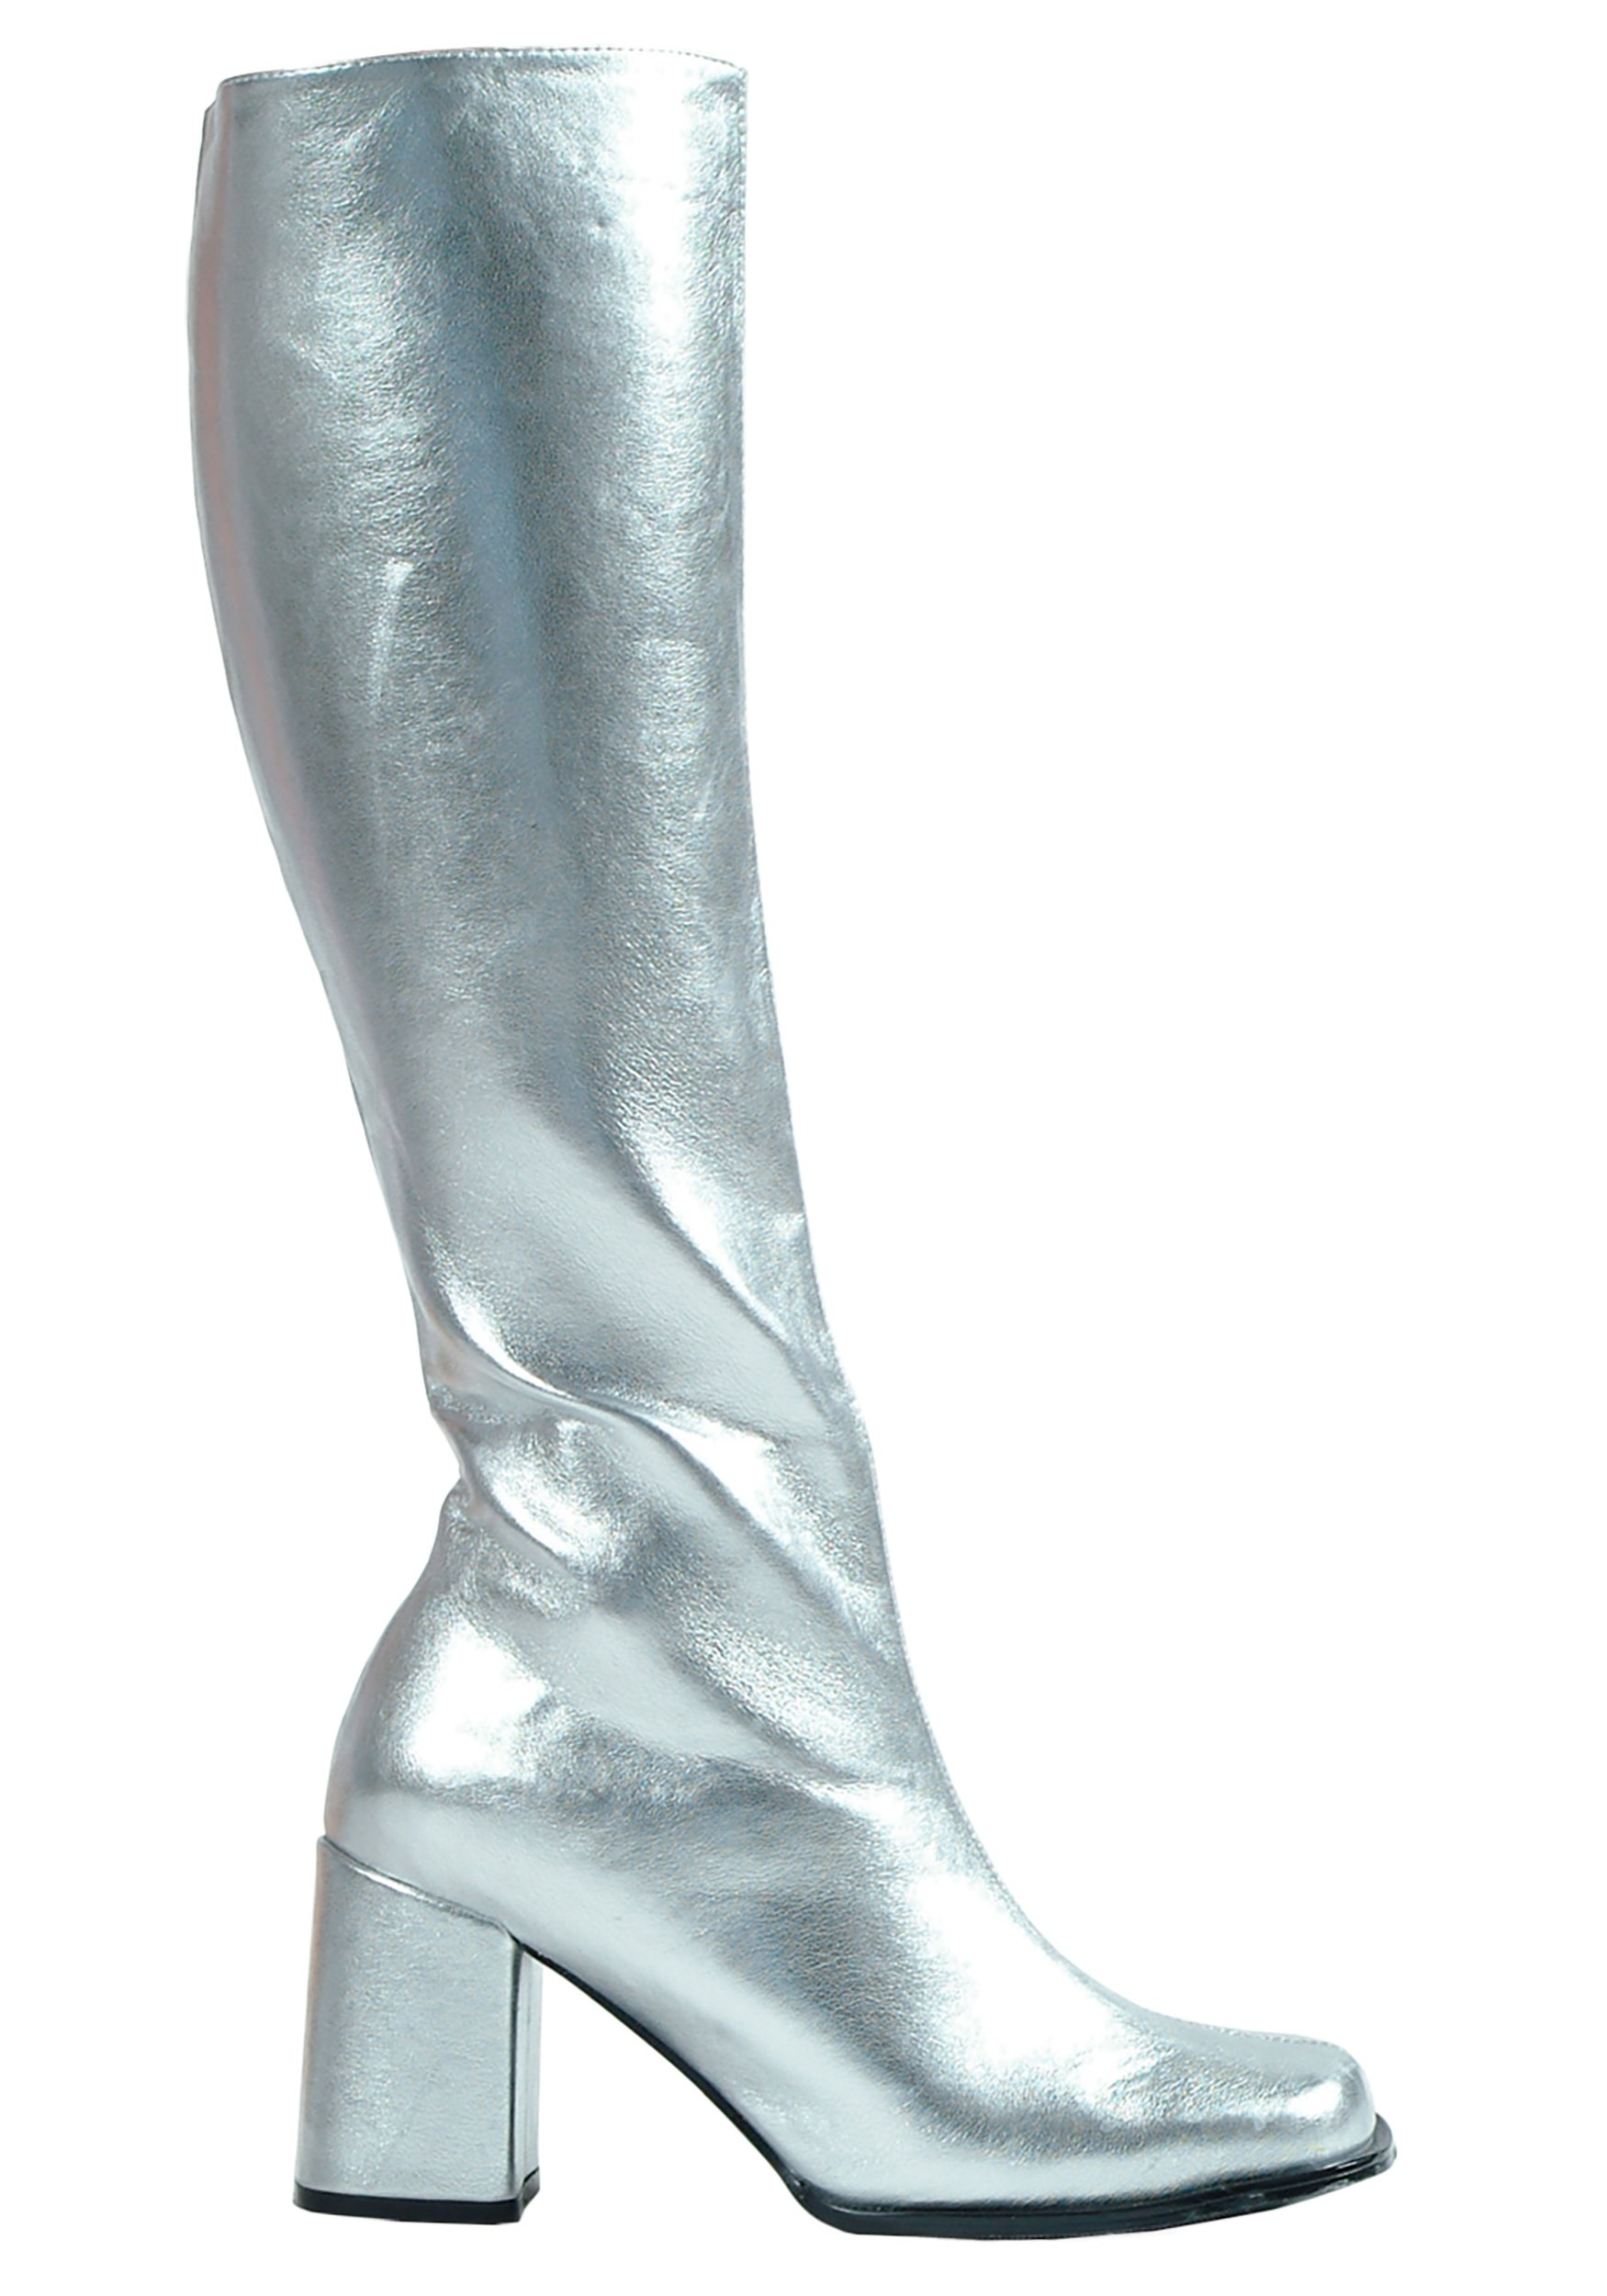 Silver Gogo Boots for Women